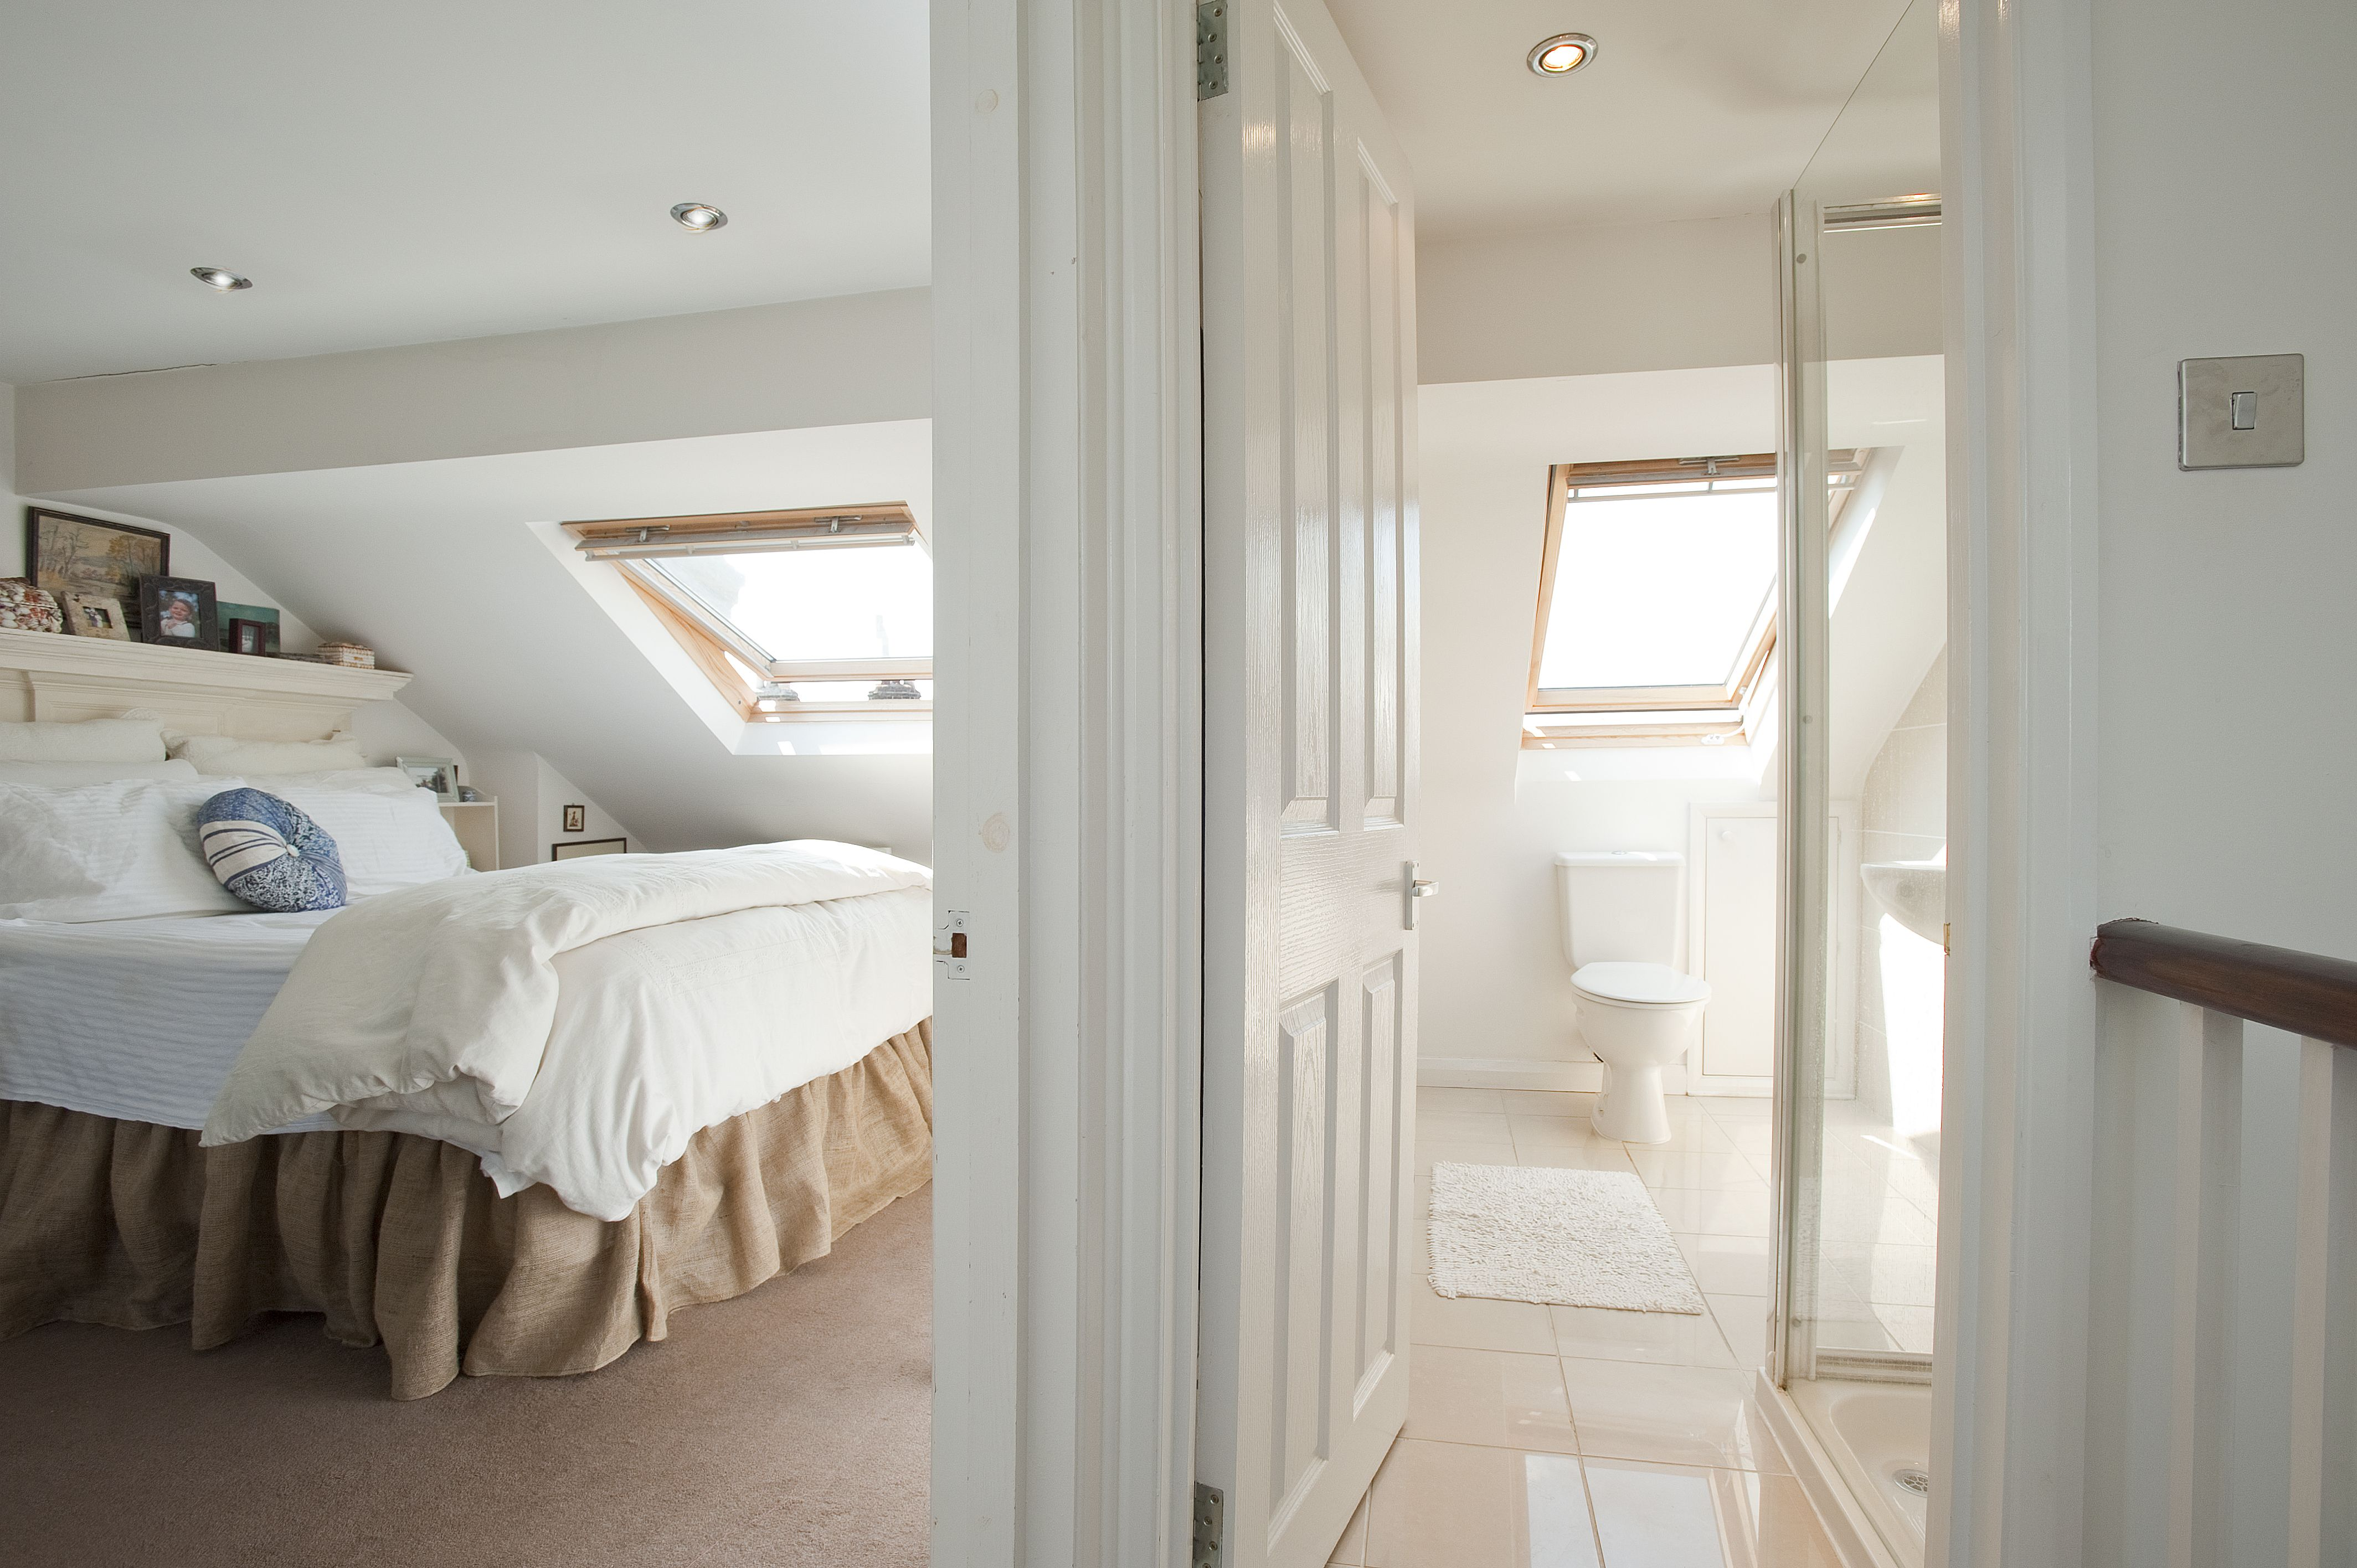 Loft Conversion Ideas We Have All The Inspiration You Need